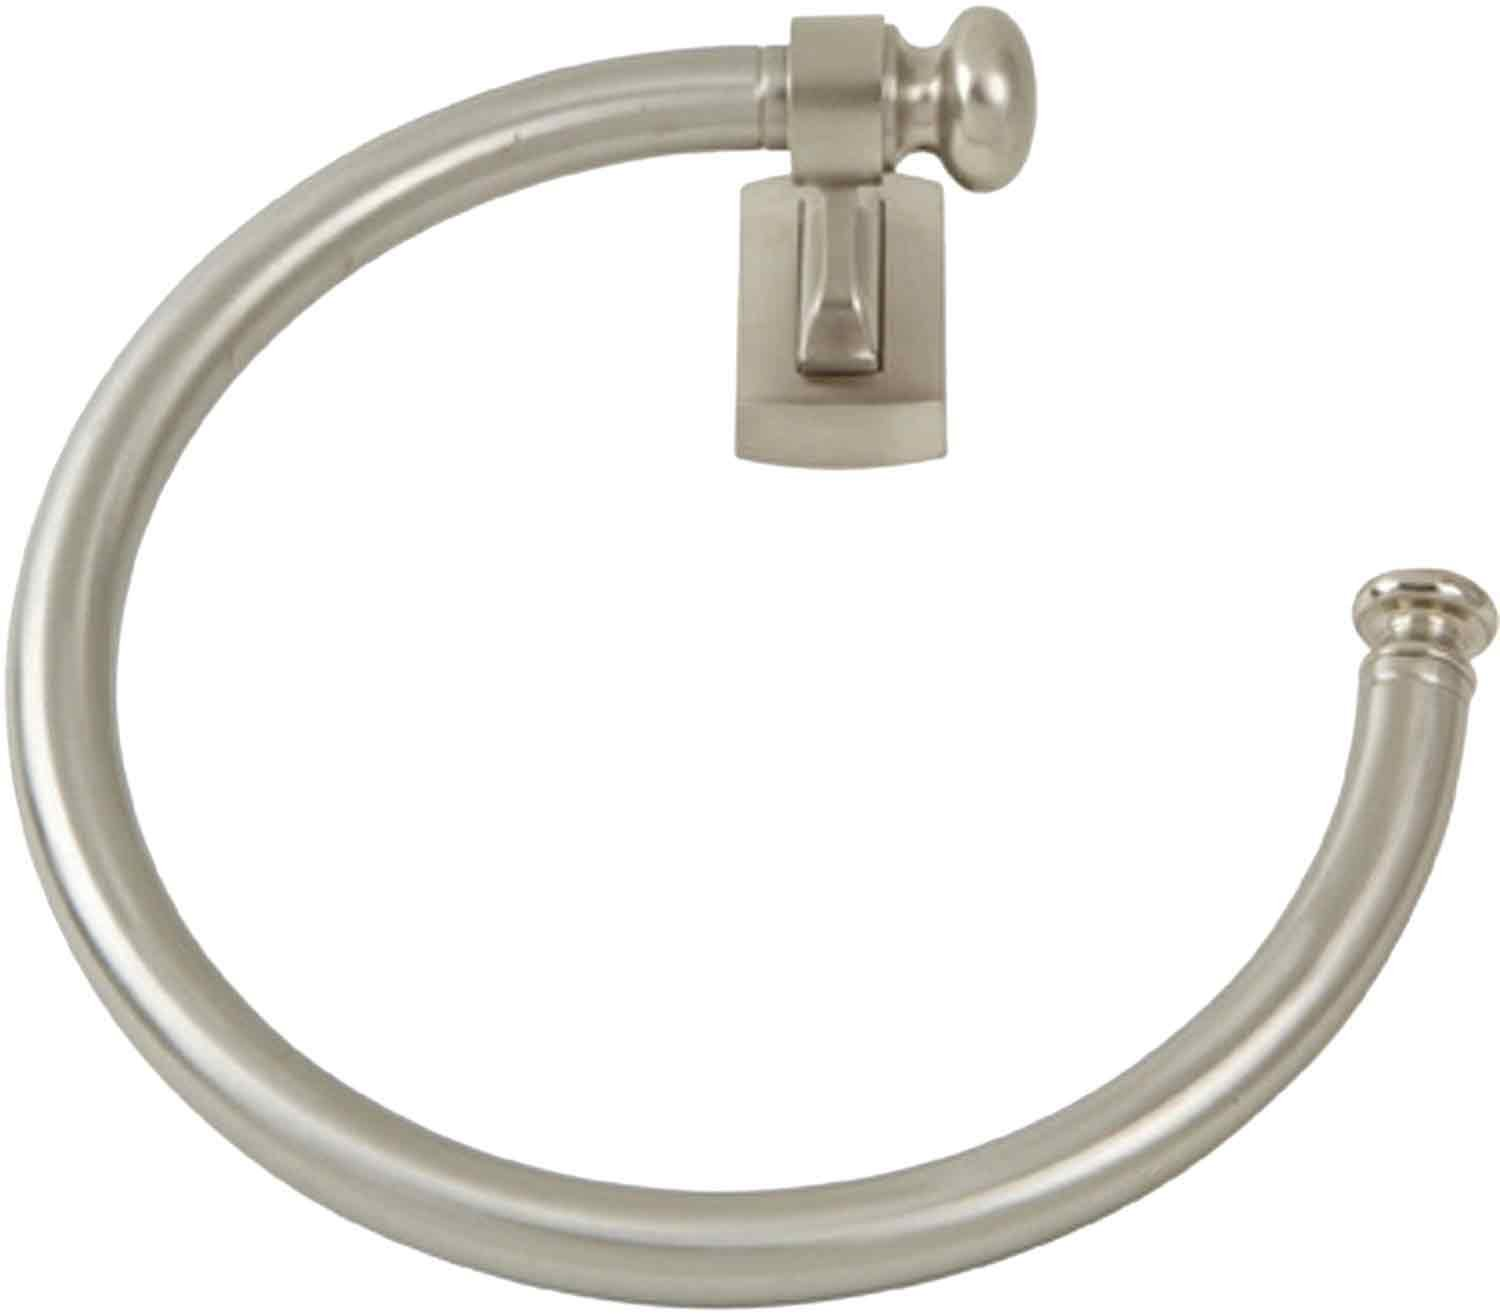 Atlas Homewares LGTR-BRN Legacy Collection 20cm Towel Ring, Brushed Nickel B00971YXQK